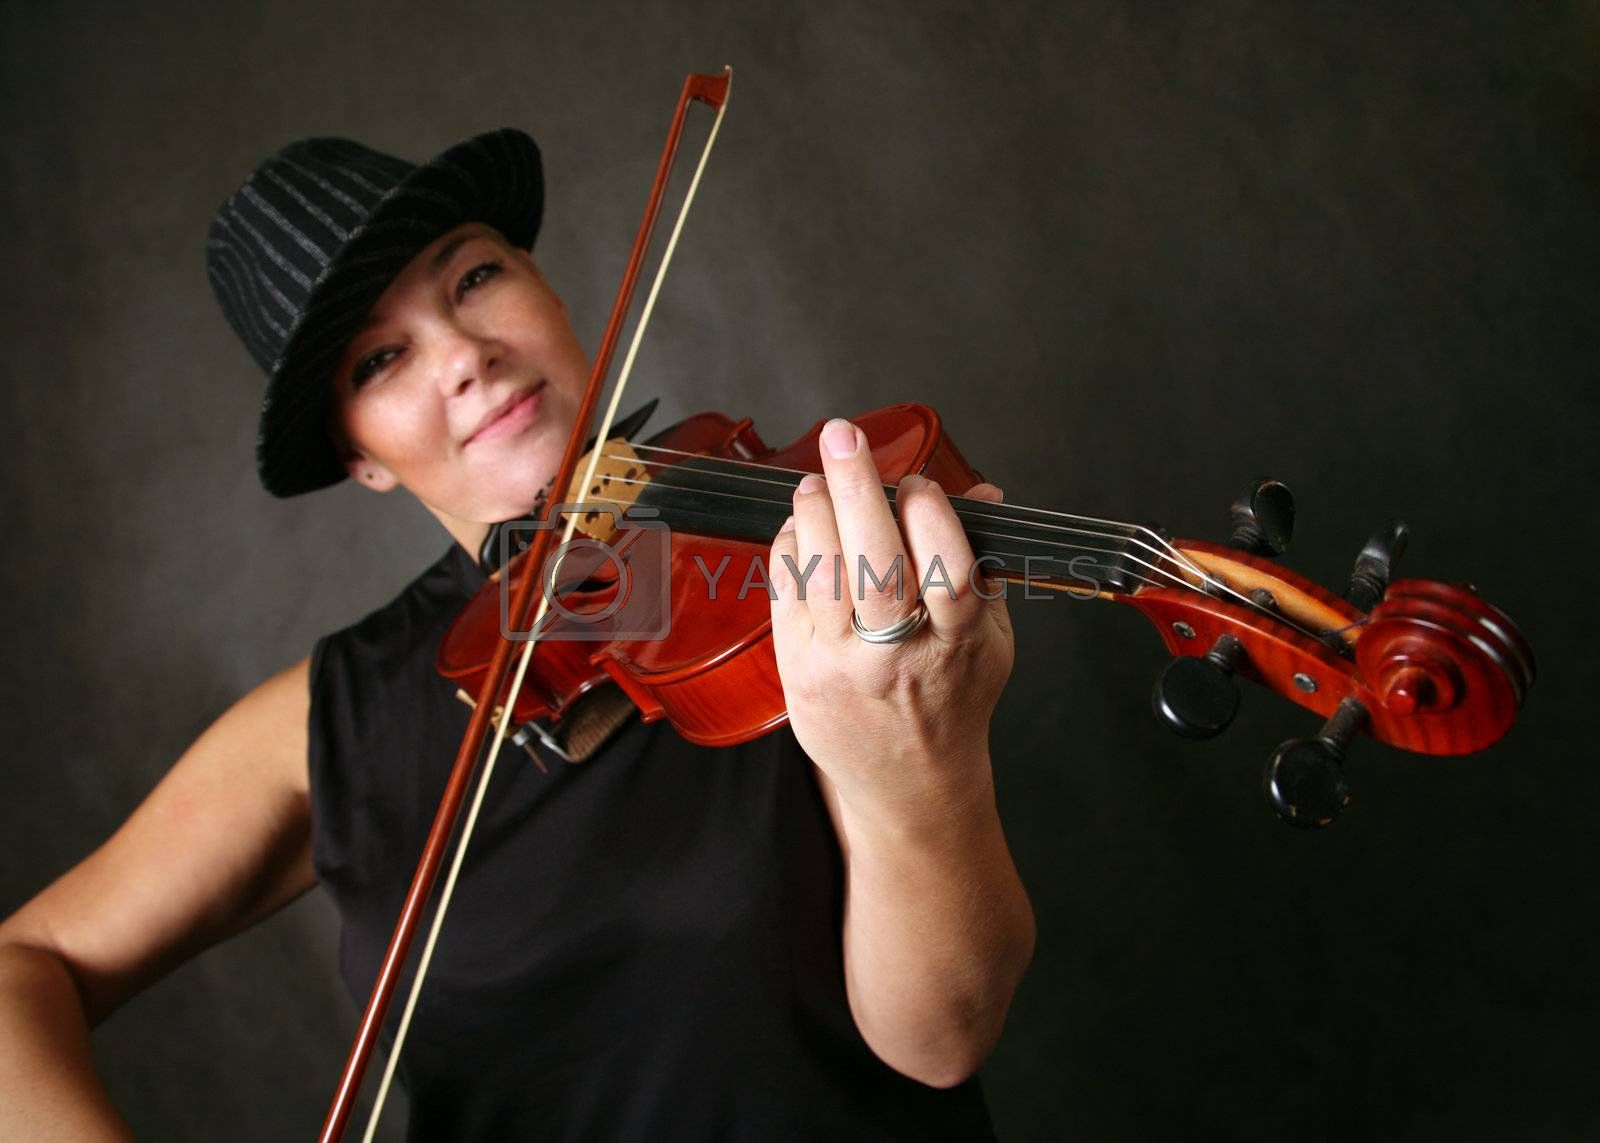 The woman in a hat, playing its violin with a smile